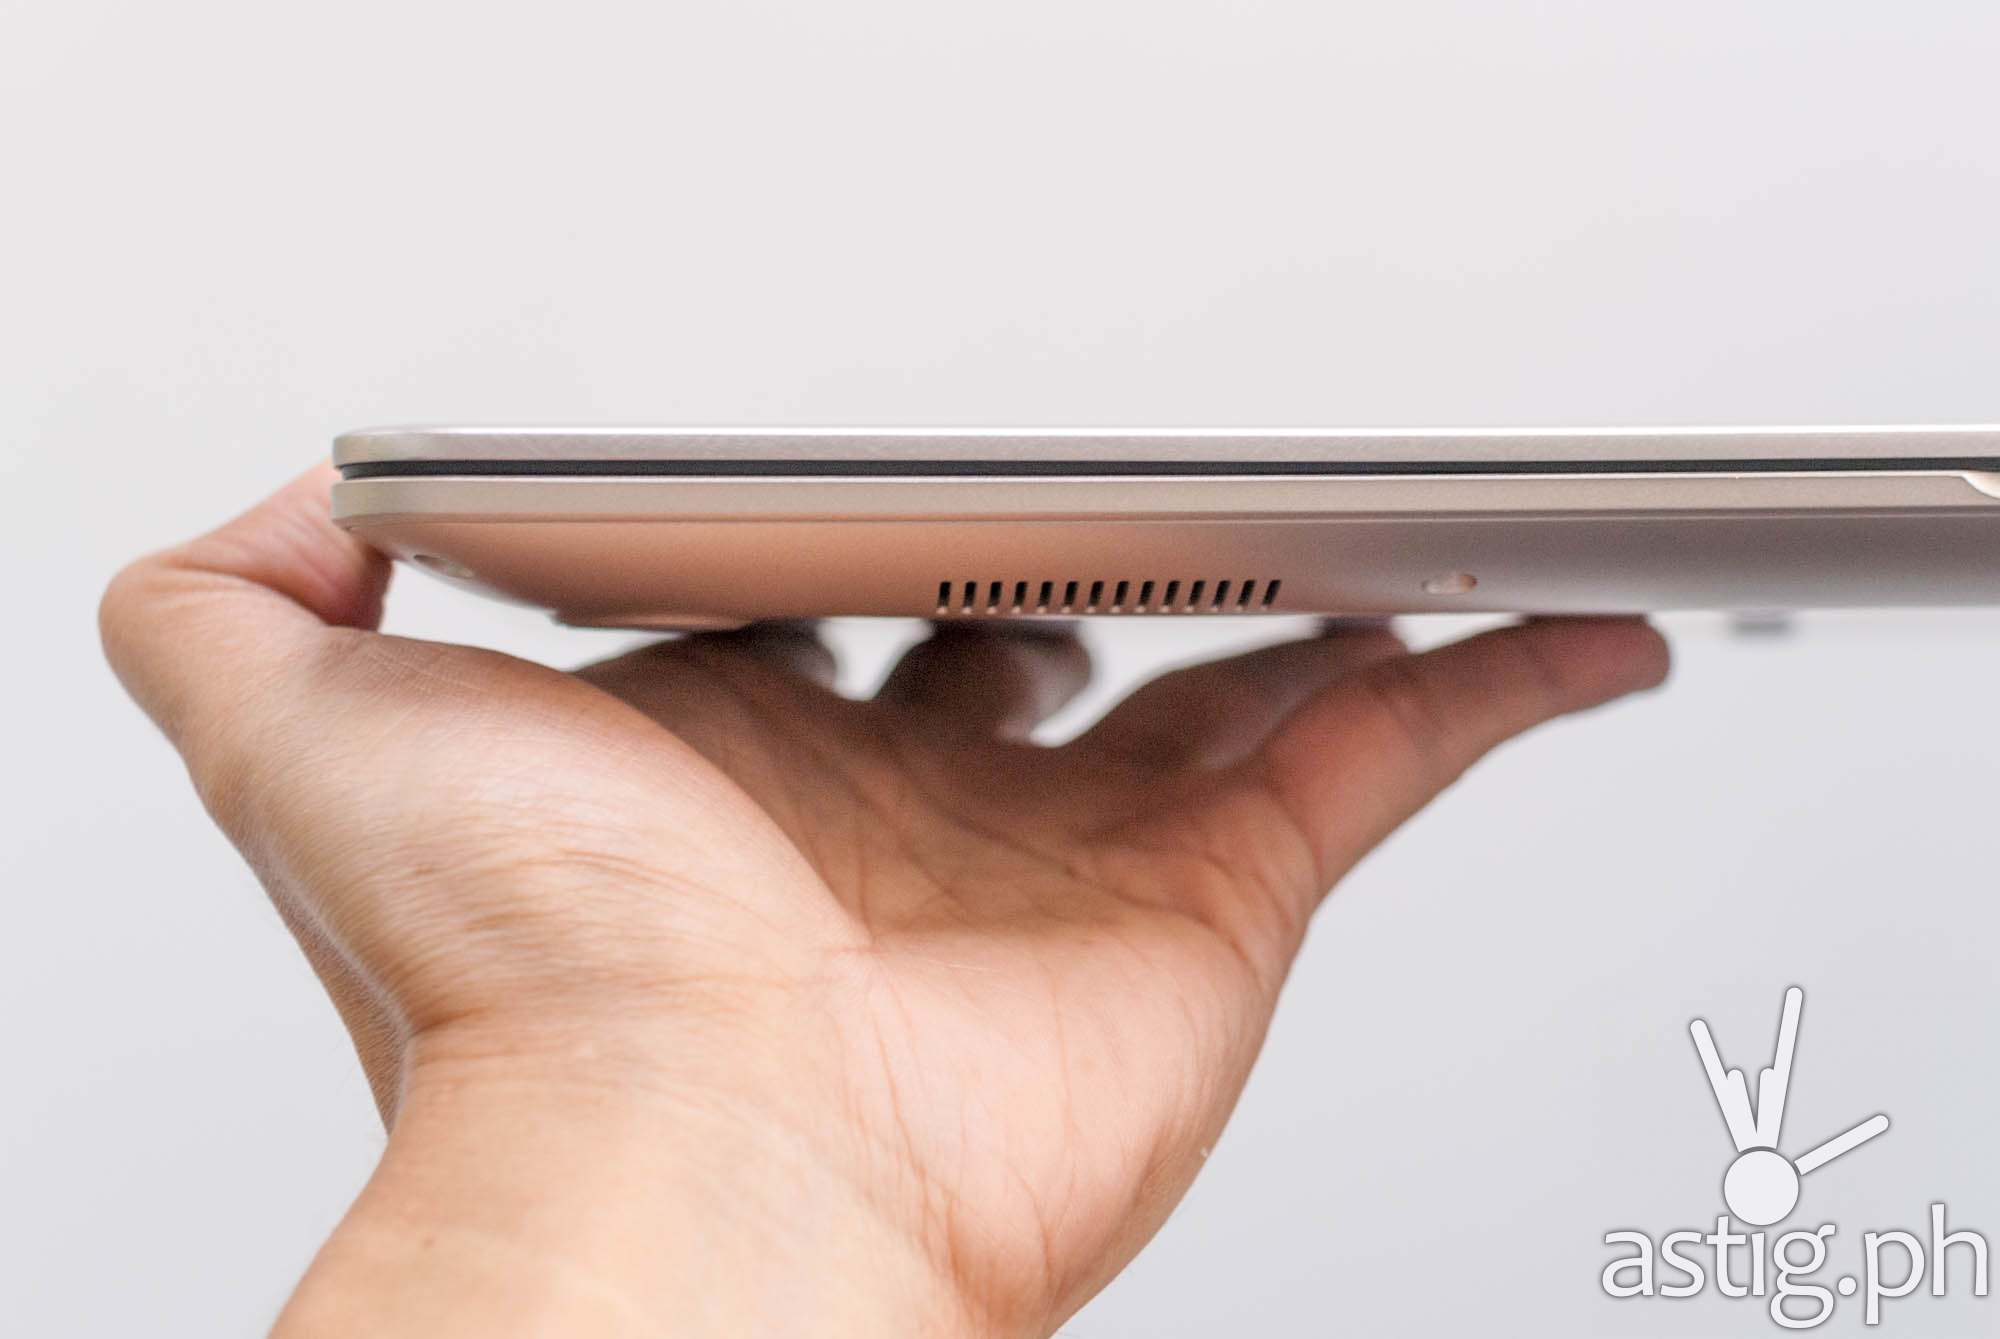 The ASUS VivoBook S15 weighs at 1.5-1.7 kilograms